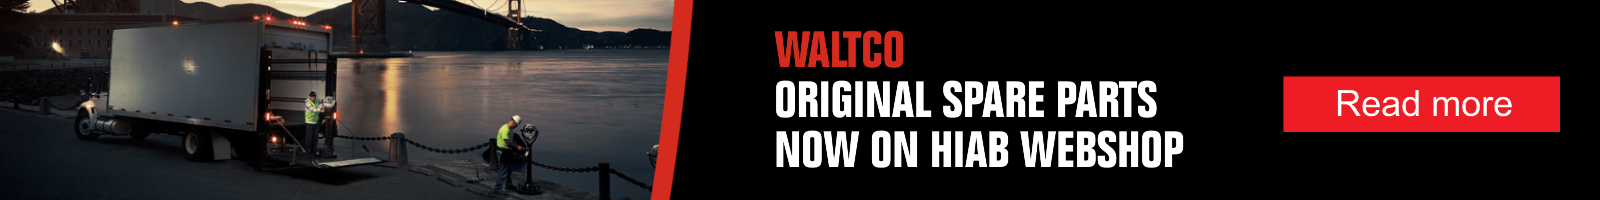 waltco-launch-1600x200.png